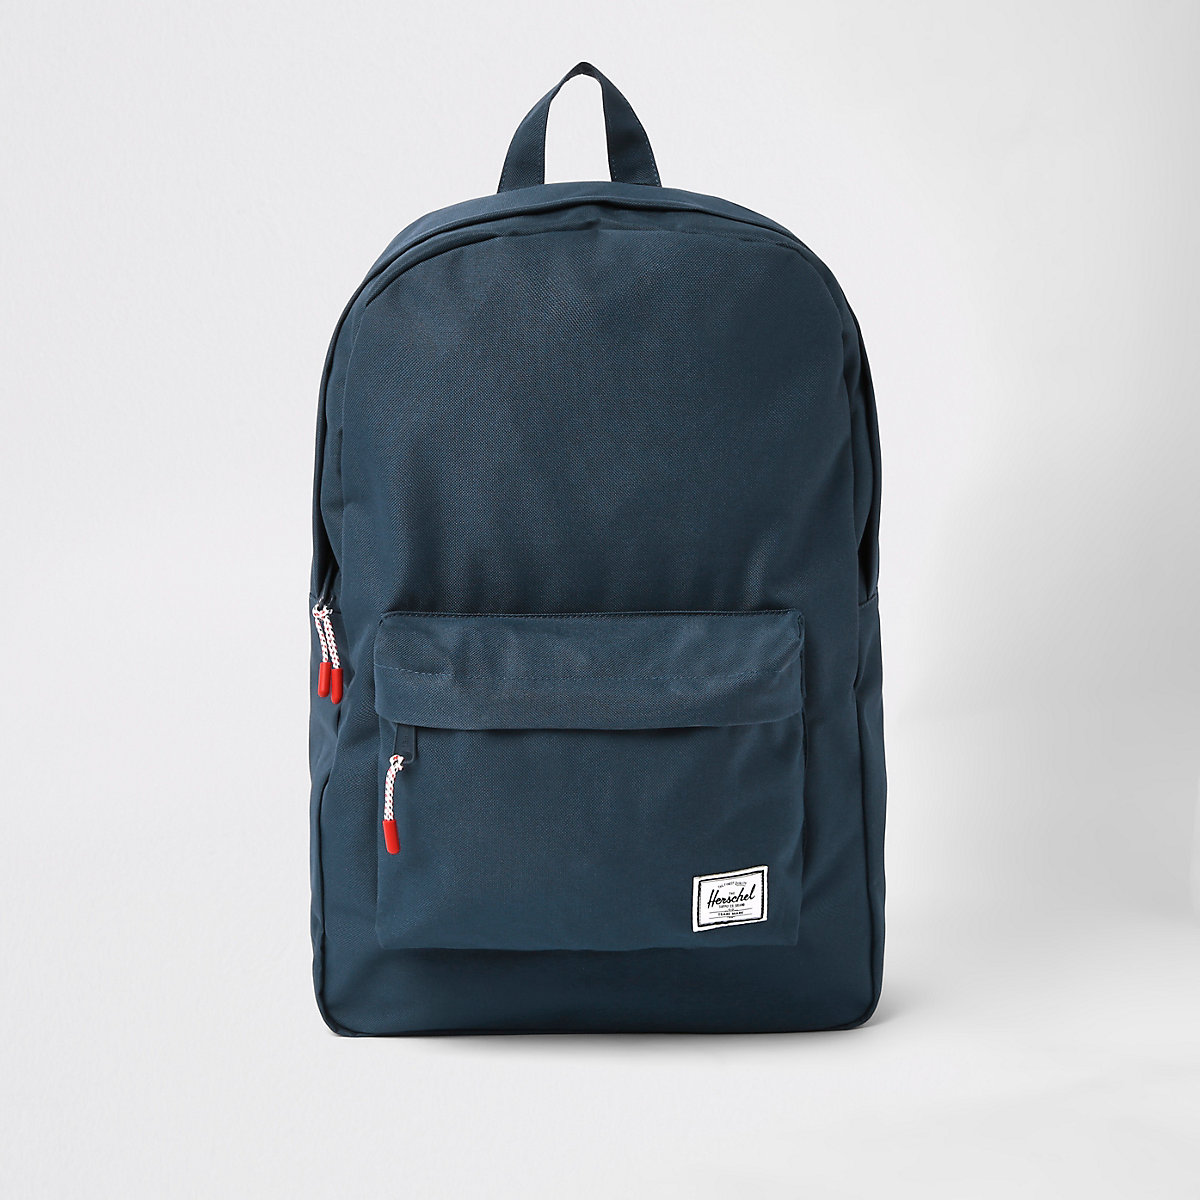 fc83608b78ea Herschel navy classic backpack - Backpacks   Rucksacks - Bags - men